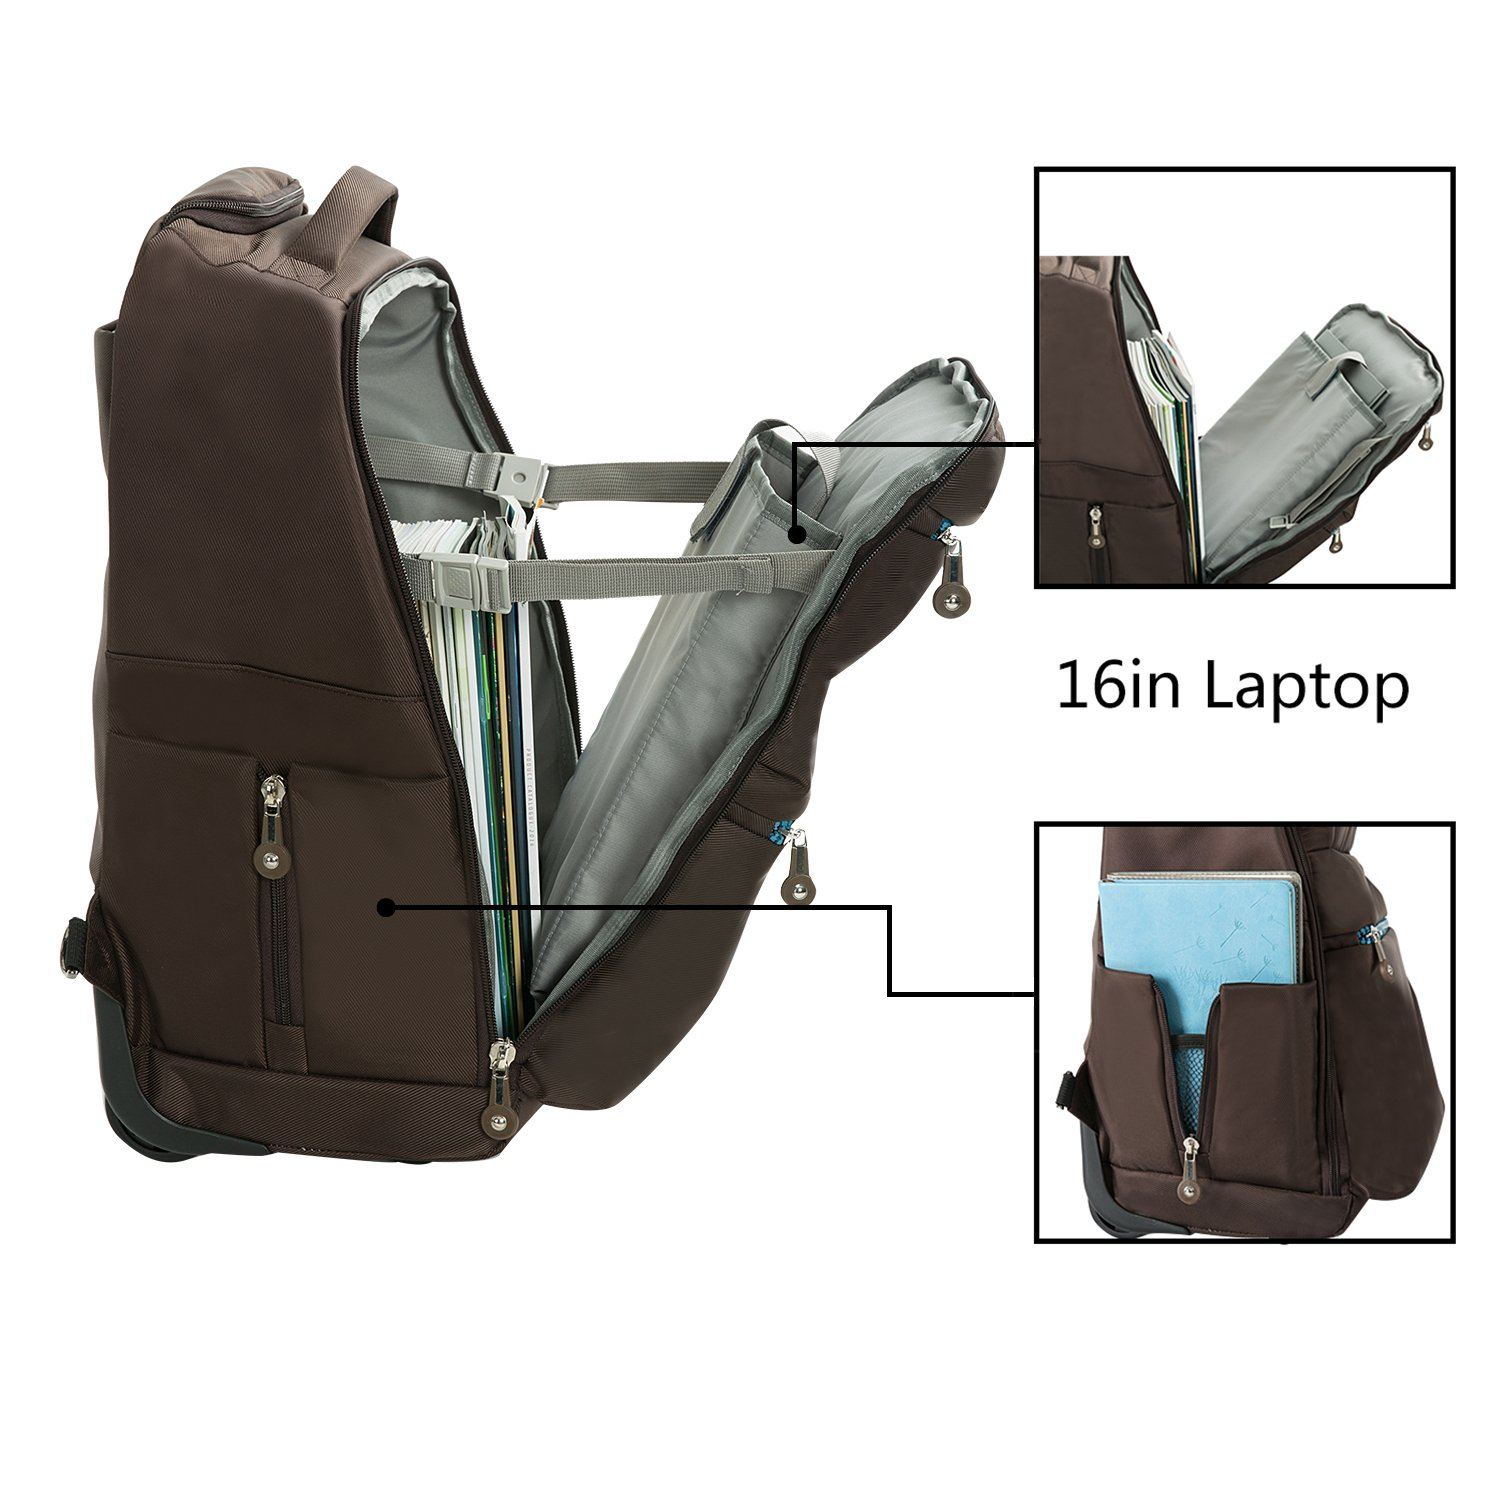 20 inches Large Storage Multifunction Waterproof Travel Wheeled Rolling Laptop Backpack Luggage, Brown by HollyHOME (Image #4)